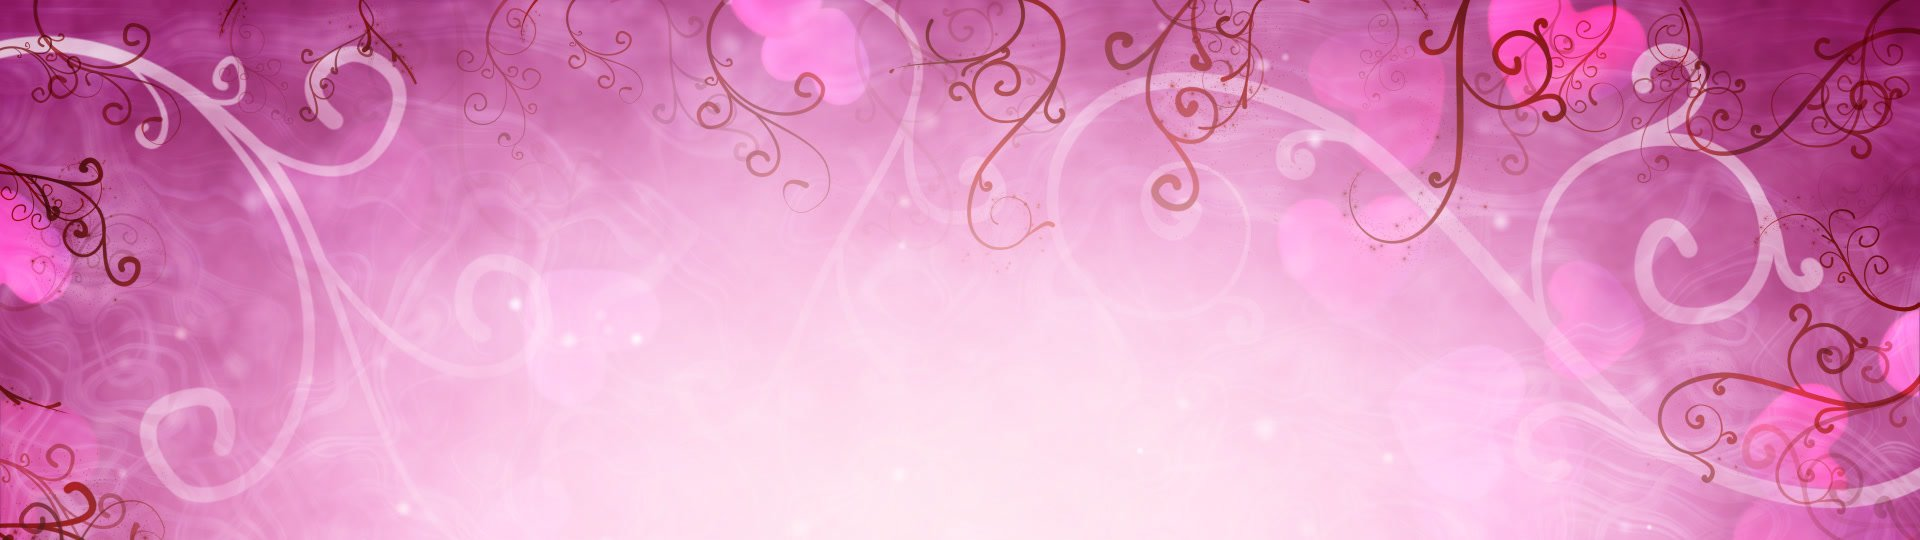 Hearts and flourishes loop romantic background | hearts and flourishes. Computer generated romantic motion seamless loop background - ID:12401